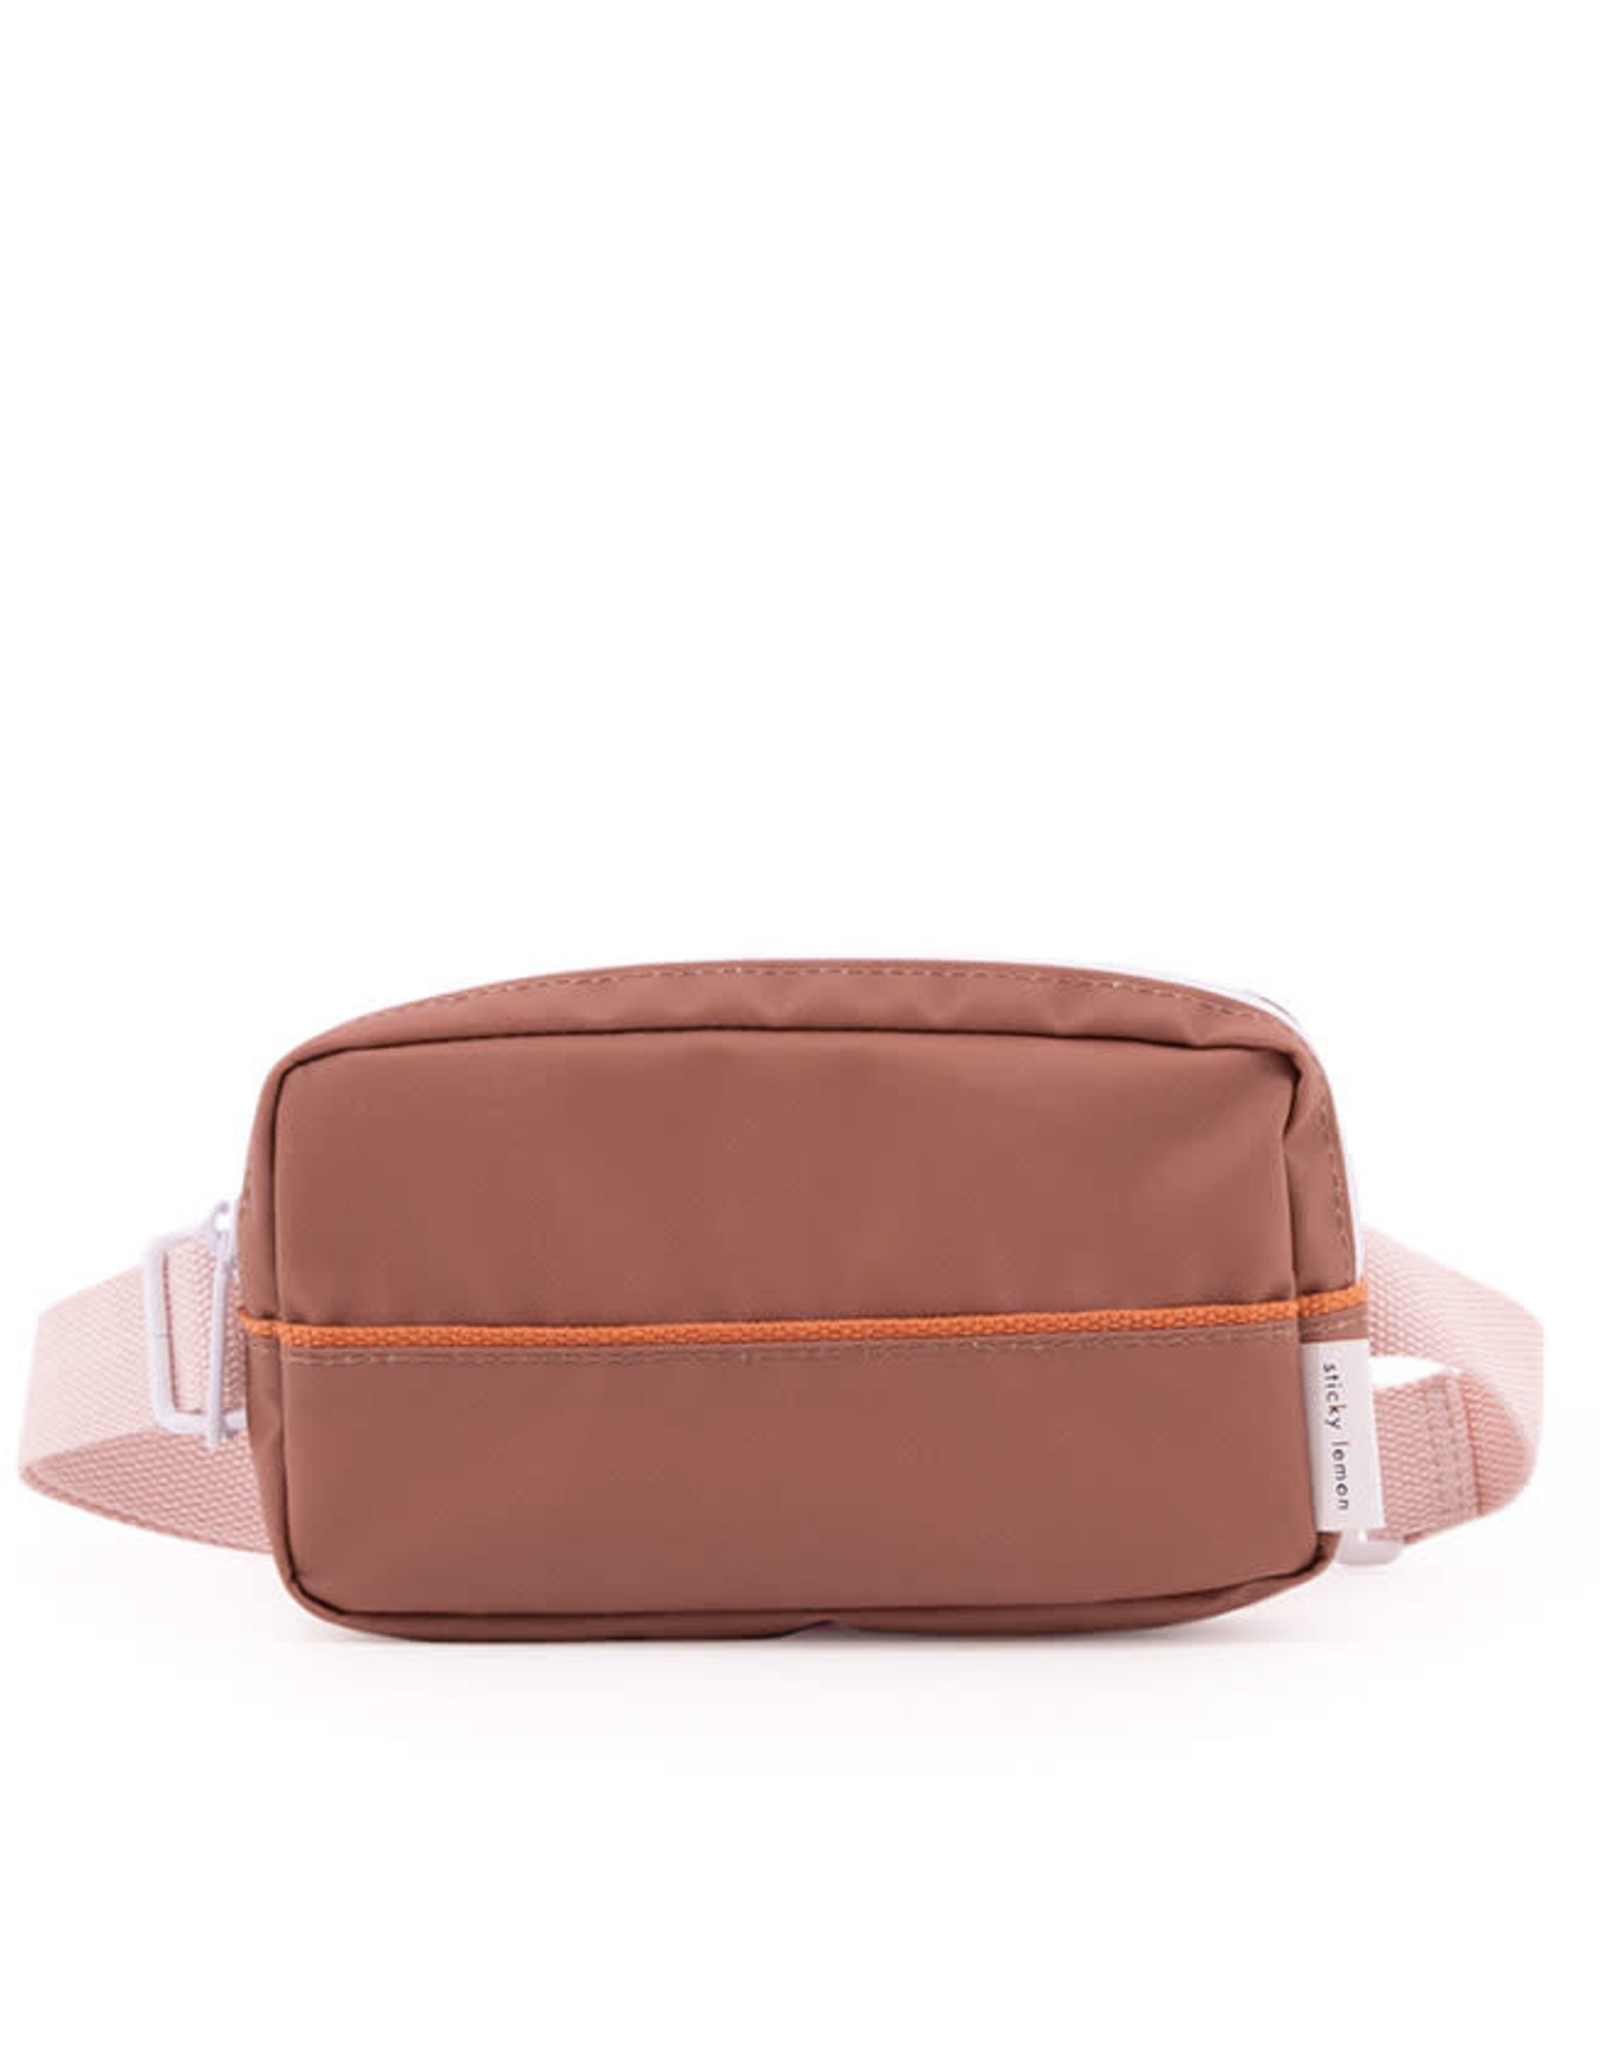 Sticky Lemon Fanny Pack Envelope-cider brown